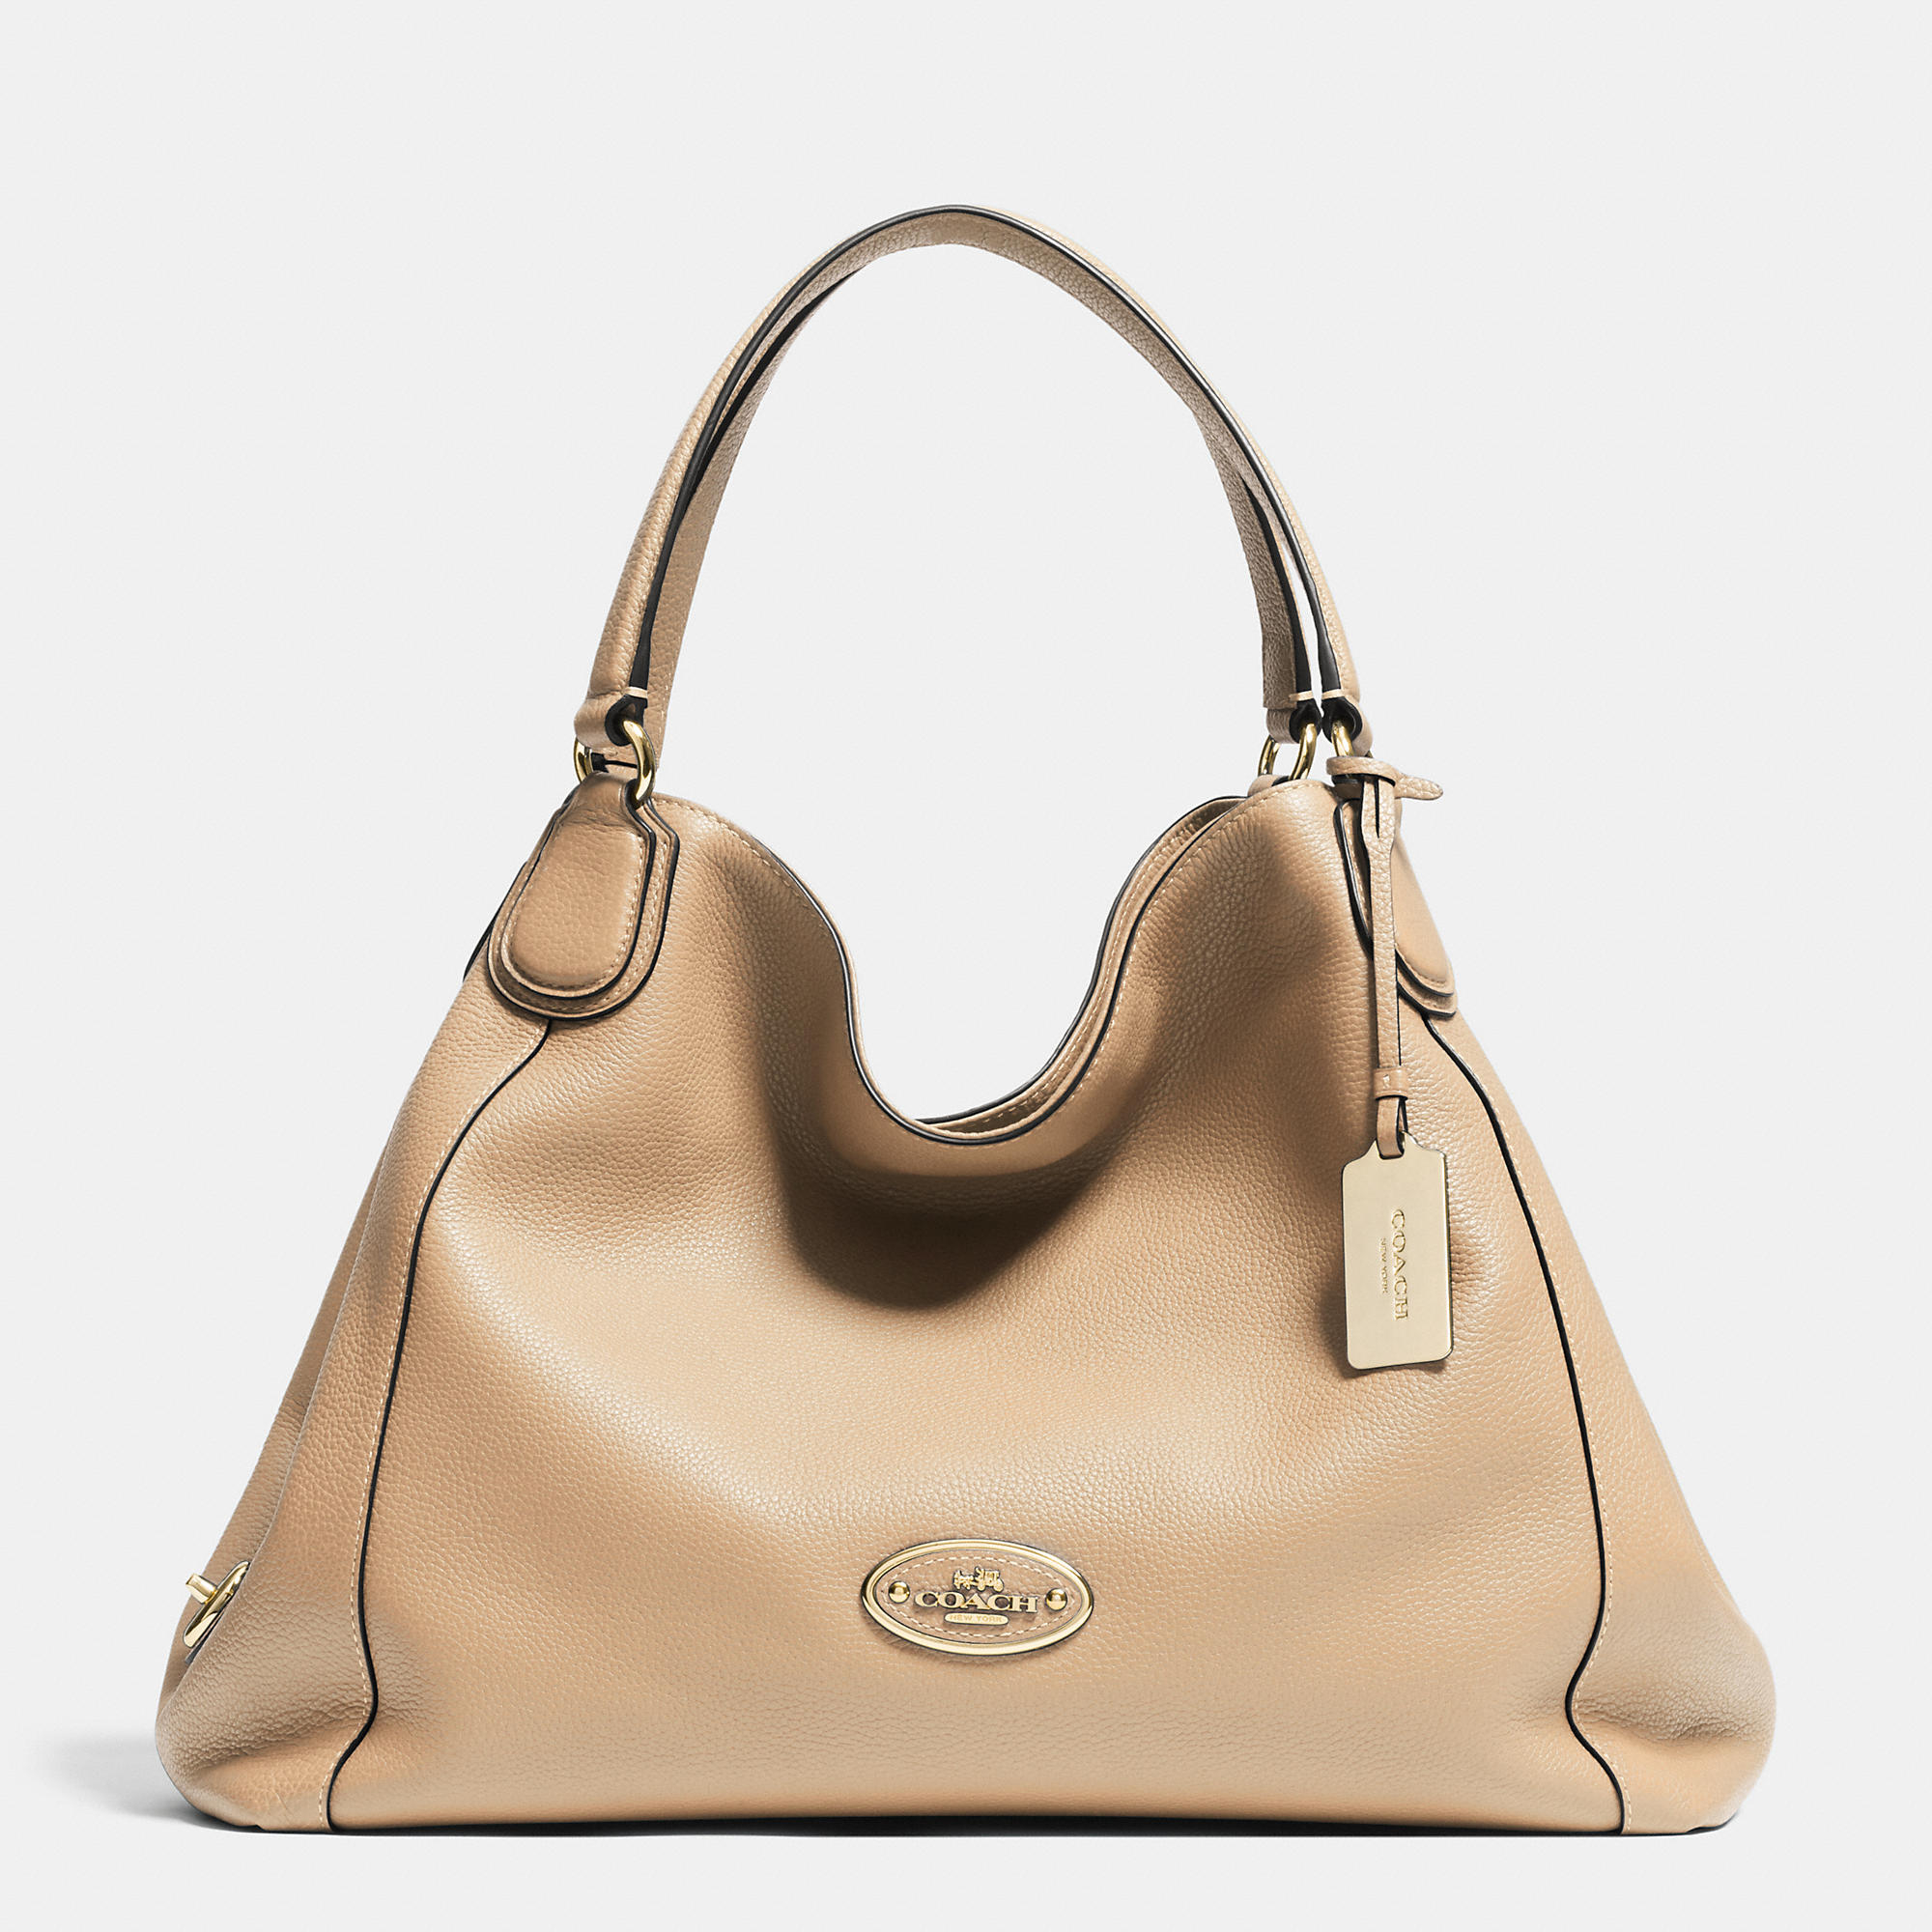 135a53f35ced Lyst - COACH Edie Shoulder Bag In Pebble Leather in Orange